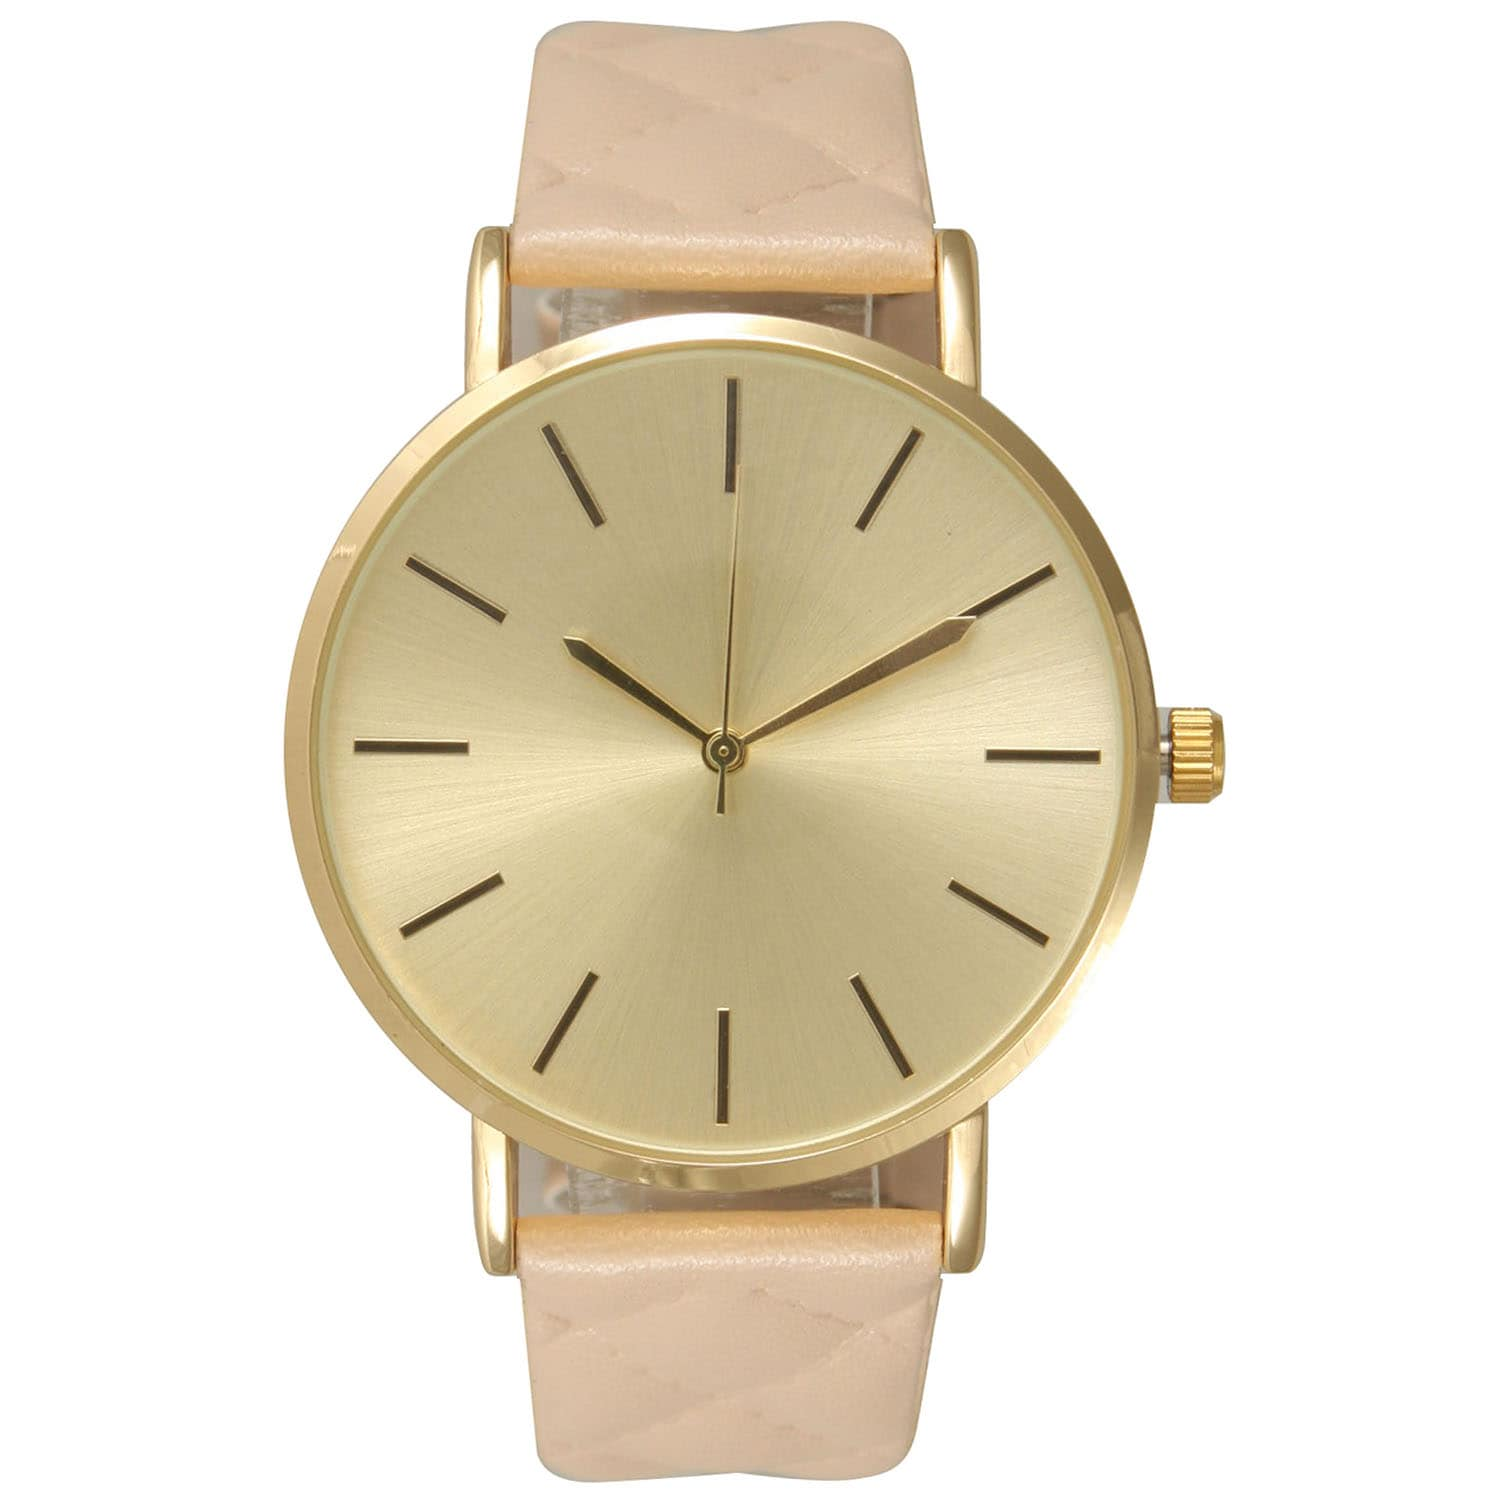 Olivia Pratt Women's Normal Everyday Watch